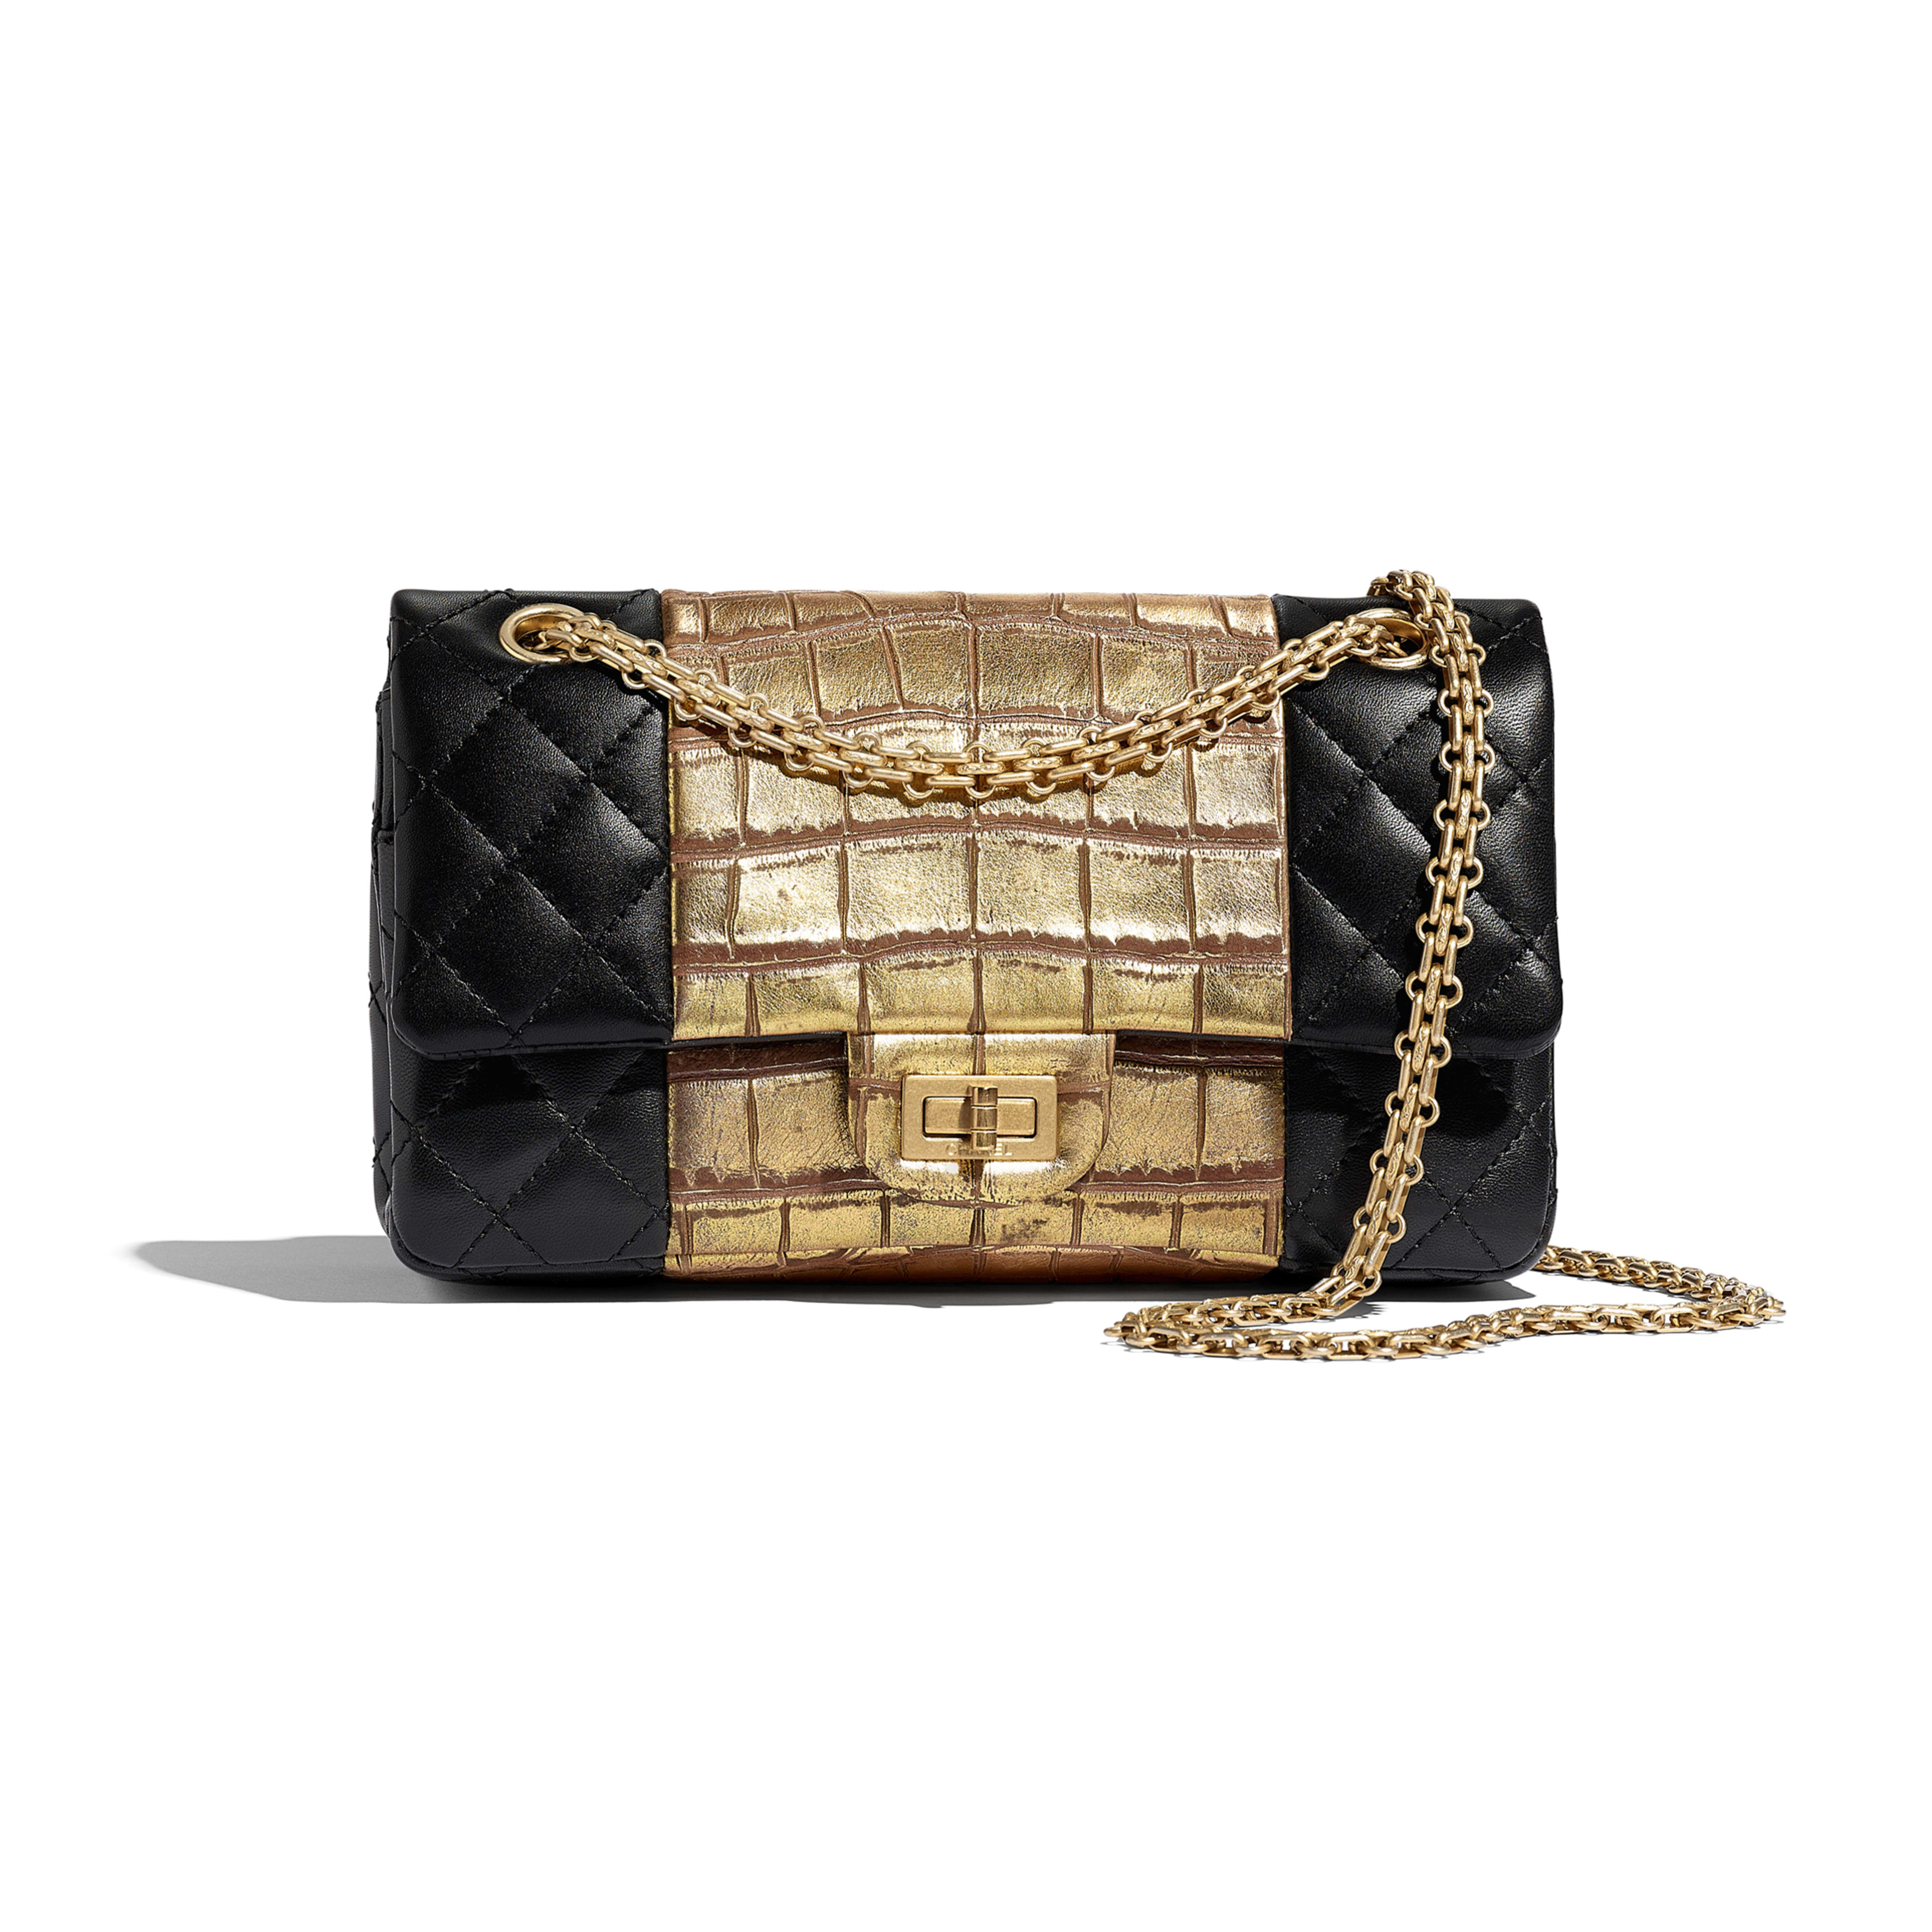 2.55 Handbag - Black & Gold - Lambskin, Crocodile Embossed Calfskin & Gold-Tone Metal - Default view - see full sized version